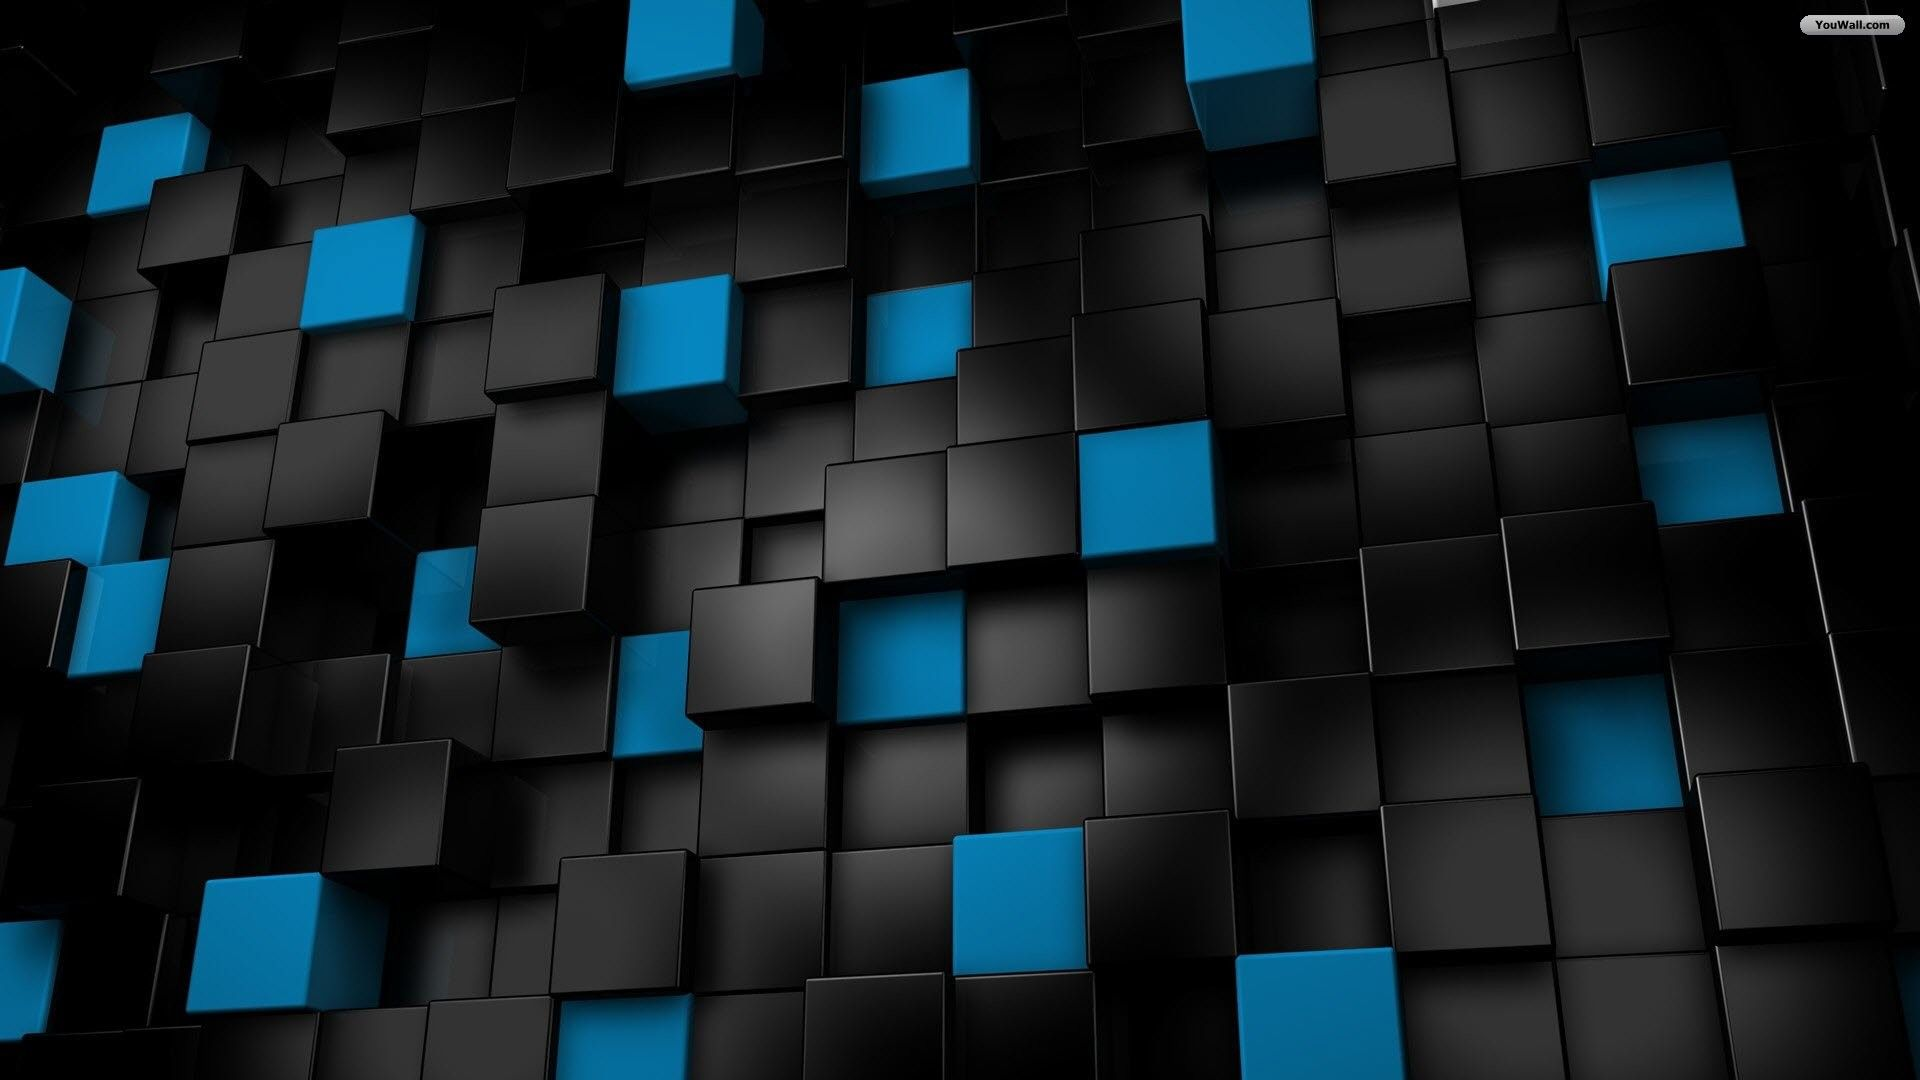 Black And Blue Wallpapers Top Free Black And Blue Backgrounds